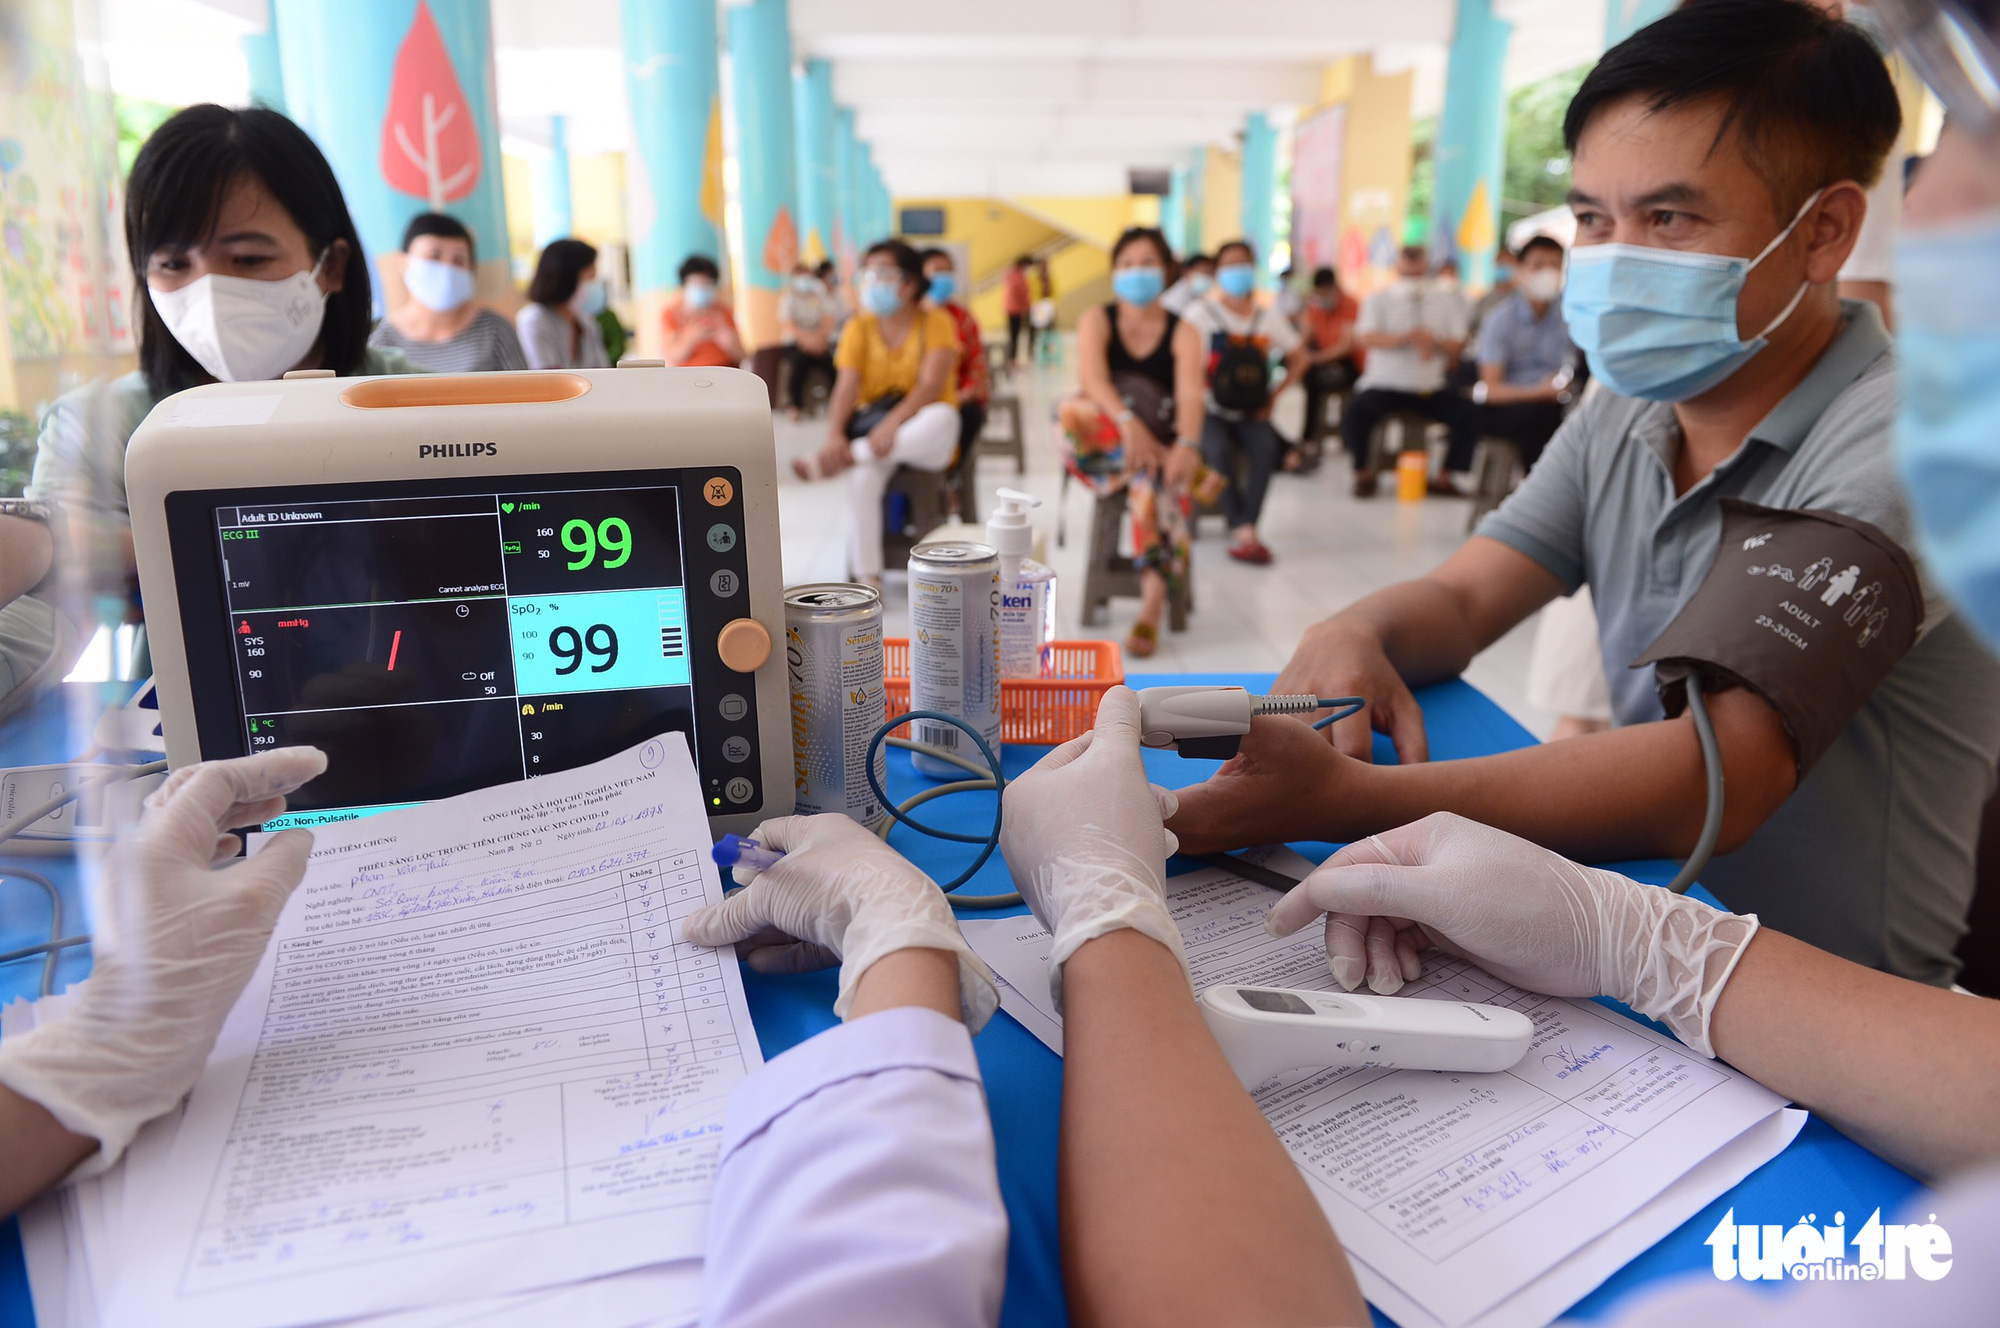 People have their heart rate measured before COVID-19 injection at a vaccination site at Nguyen Binh Khiem Elementary School in District 1, Ho Chi Minh City, June 22, 2021. Photo: Quang Dinh / Tuoi Tre